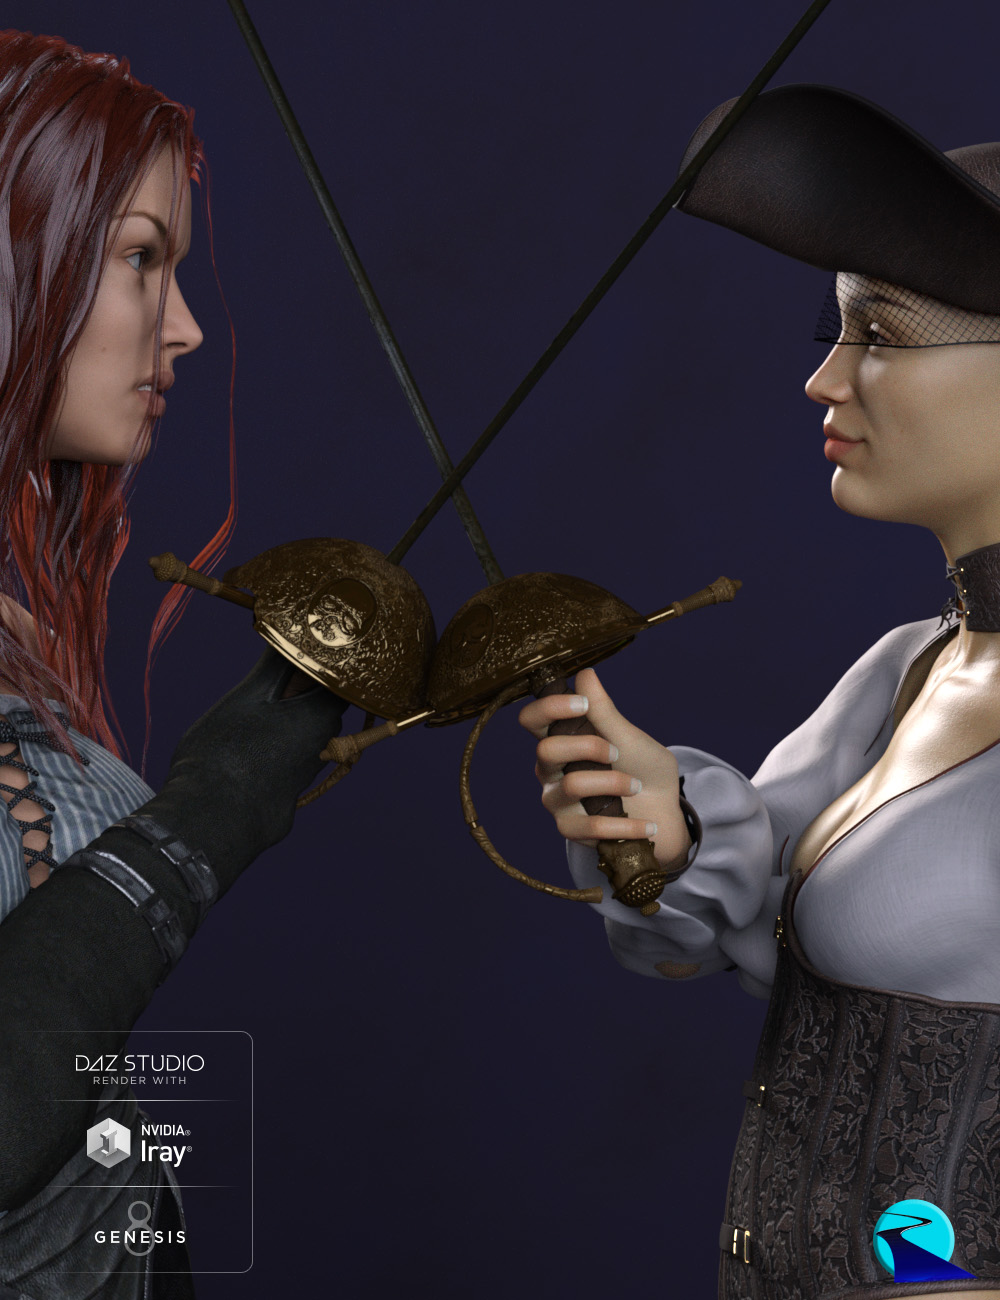 Props & Poses Converter from Genesis 3 Female to Genesis 8 Female by: RiverSoft Art, 3D Models by Daz 3D